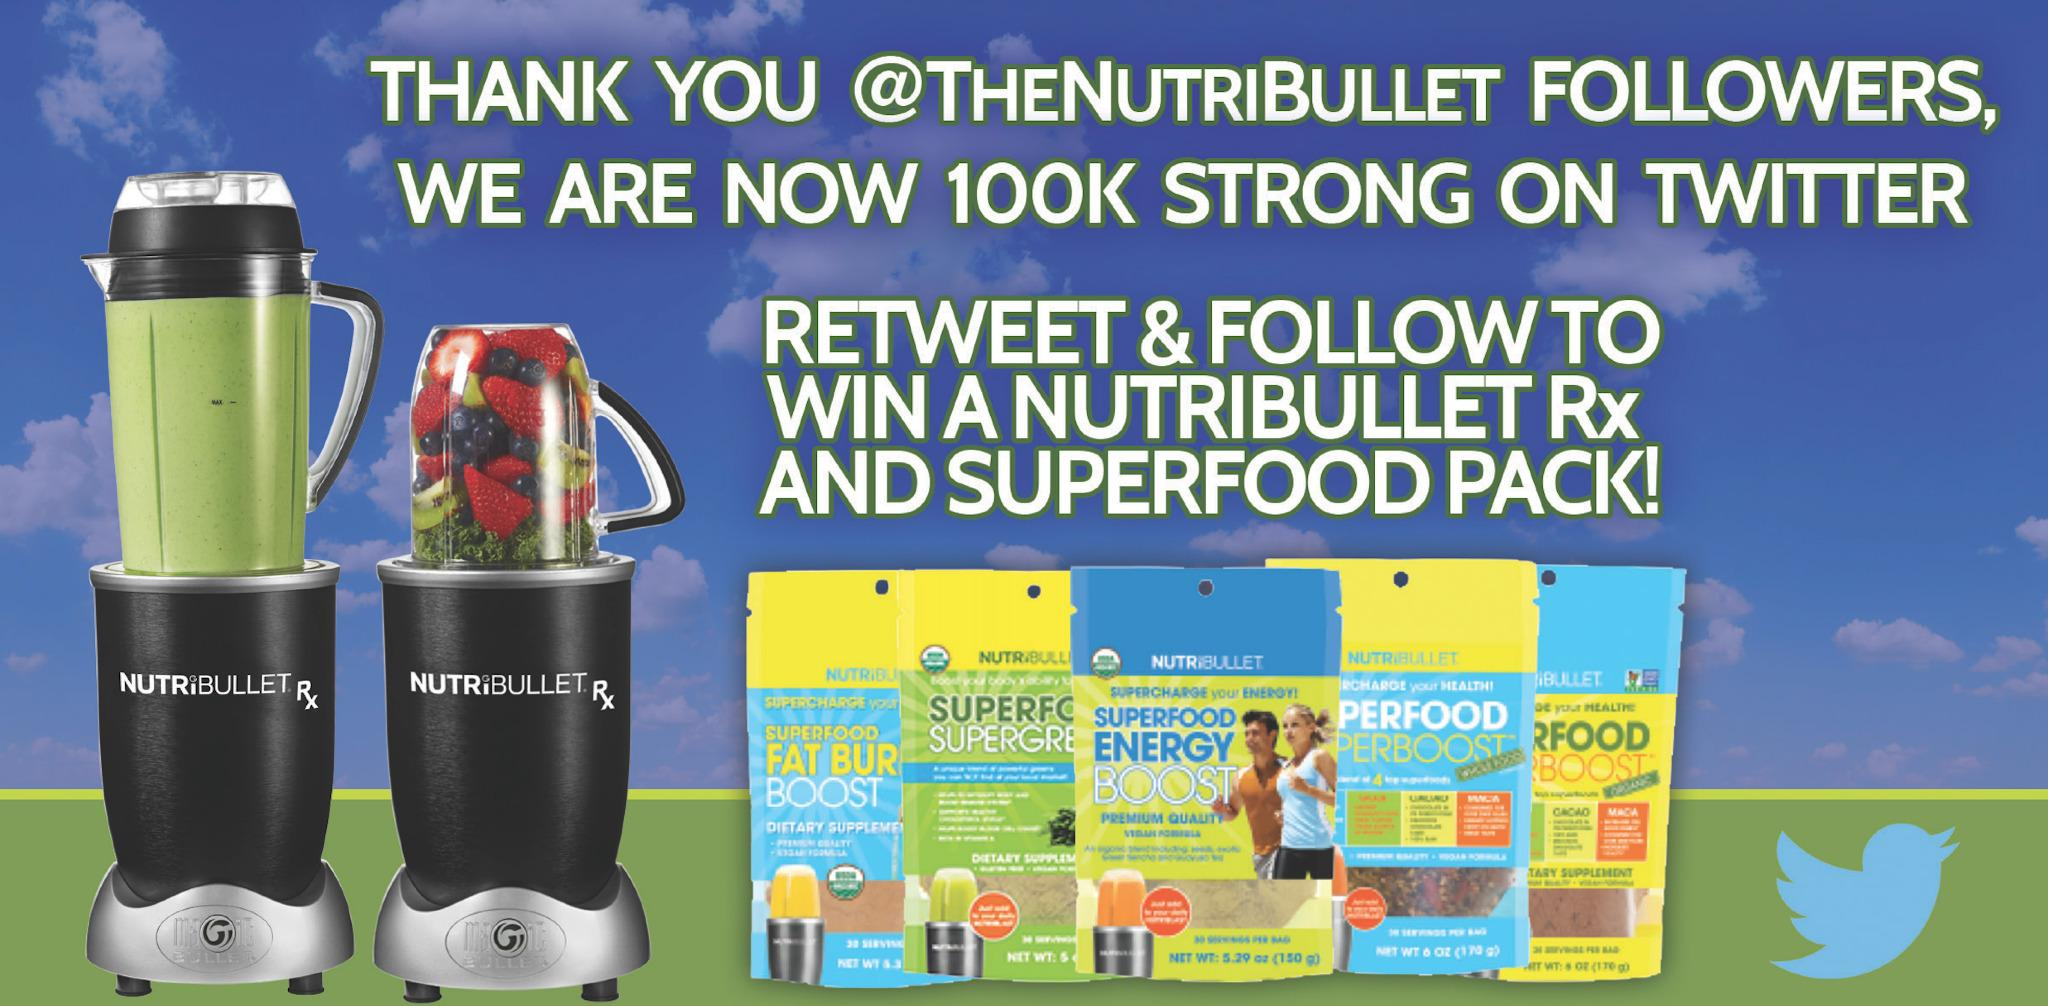 RT and Follow to win a #NutriBulletRx and SuperFoods pack! Thanks for the 100k followers! http://t.co/qNeLaiYoxc